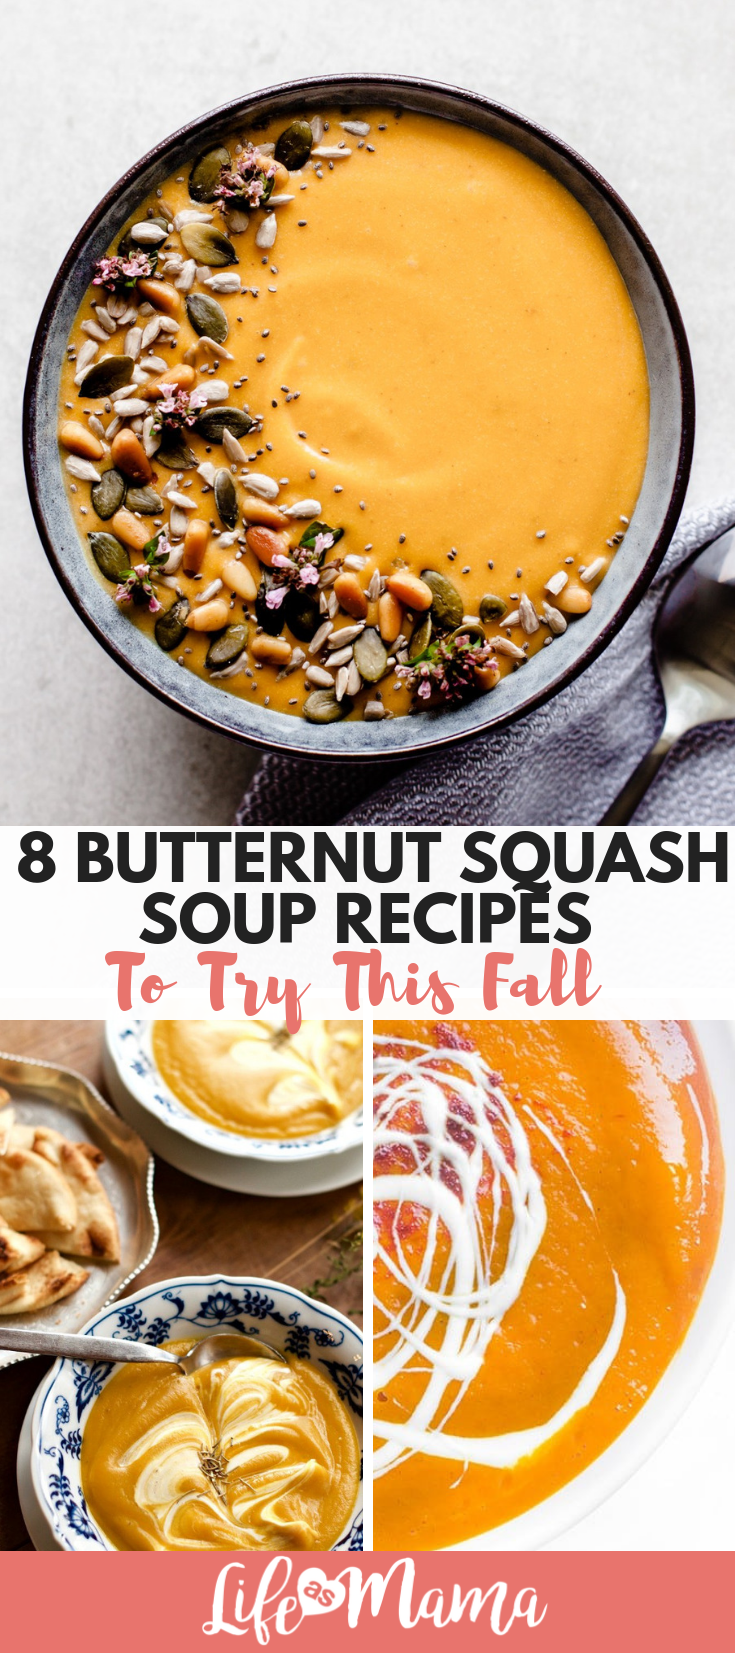 8 Butternut Squash Soup Recipes To Try This Fall